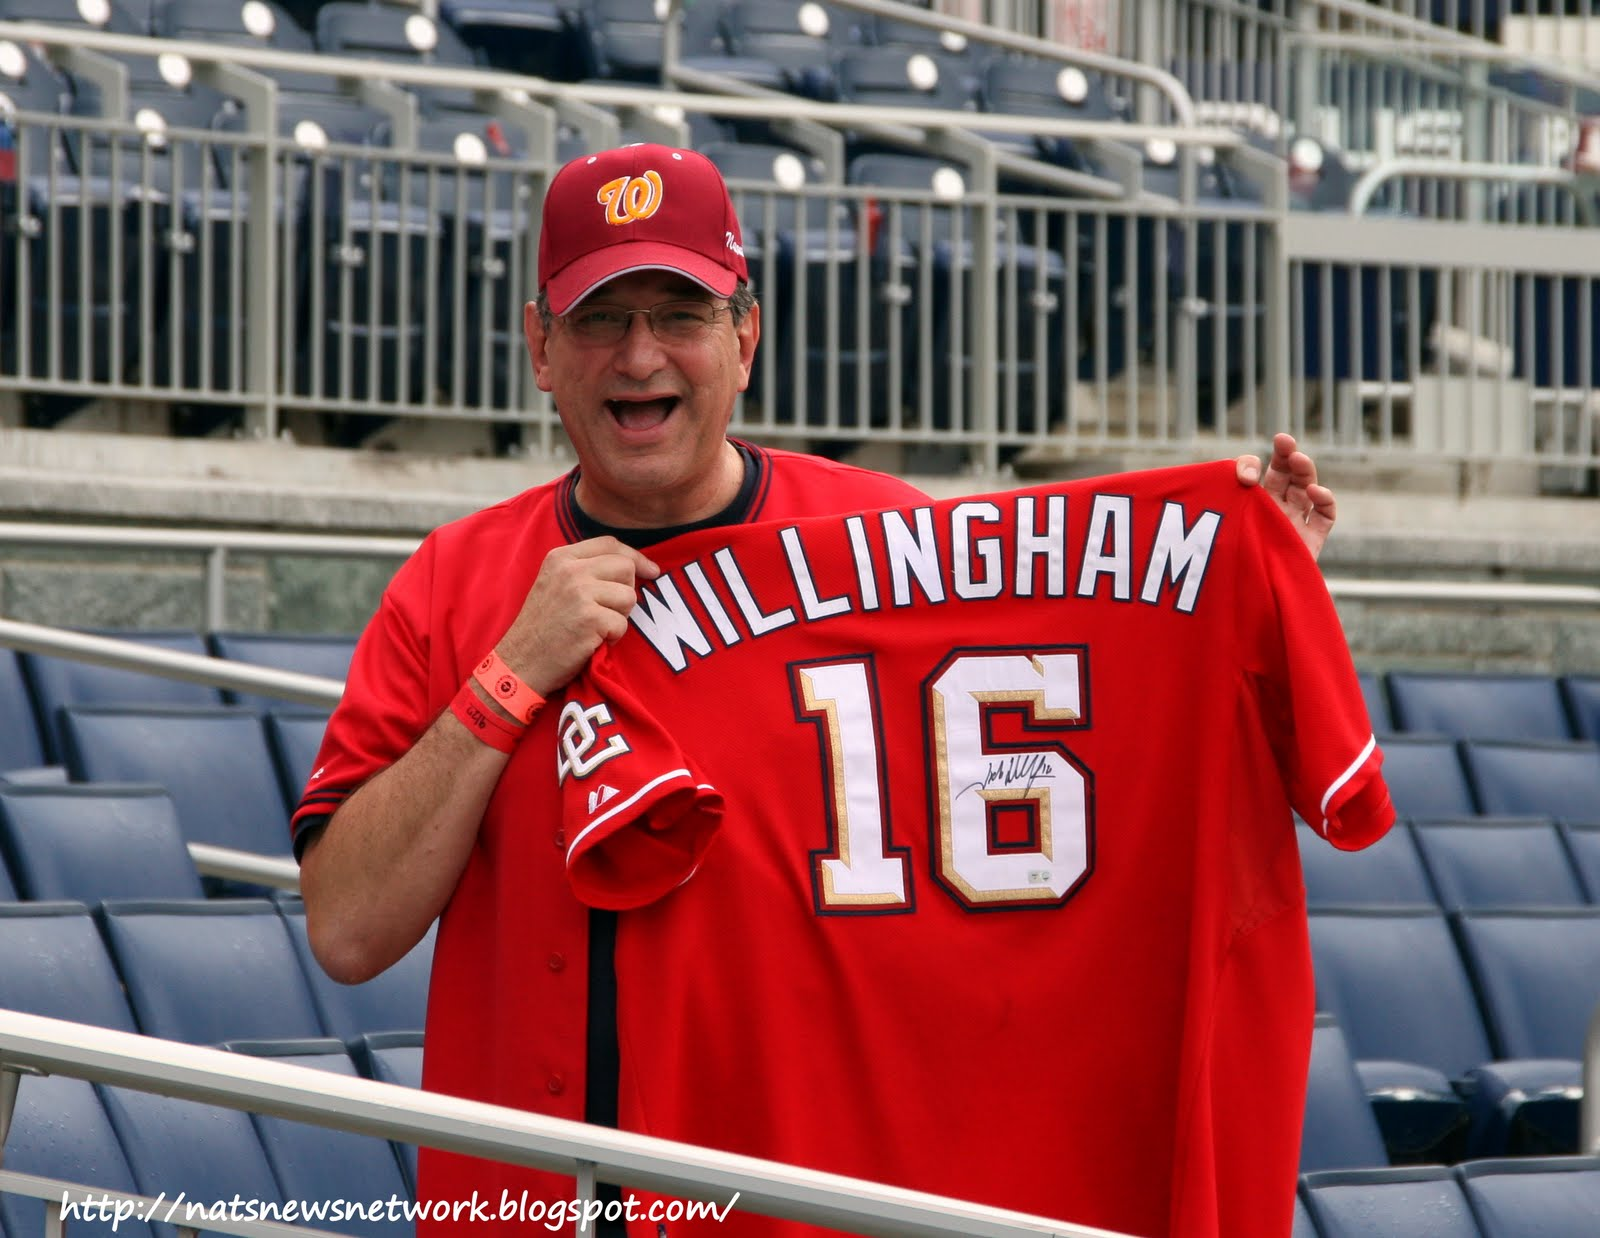 http://4.bp.blogspot.com/_4d5hky618zo/TIdE-7X7aHI/AAAAAAAAmFQ/A4MB0rt1zF4/s1600/IMG_3667+Phil+with+Willingham+jersey.jpg